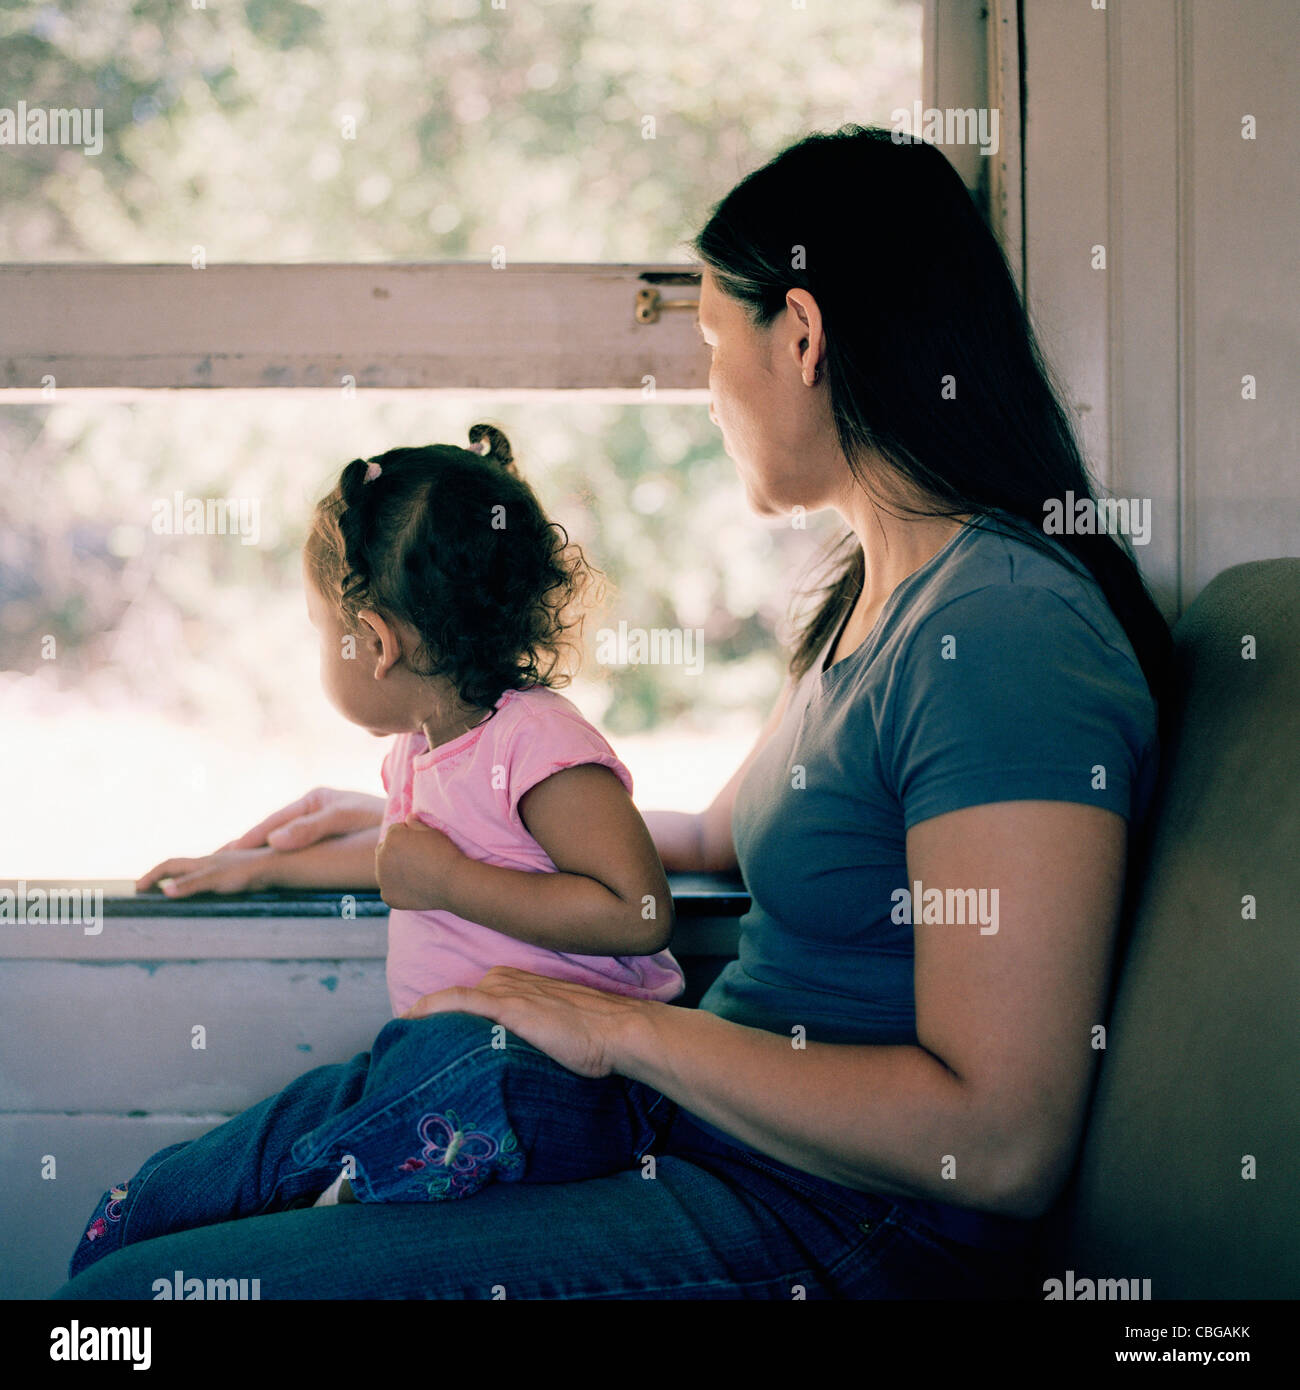 A mother and daughter on a train, looking through window - Stock Image